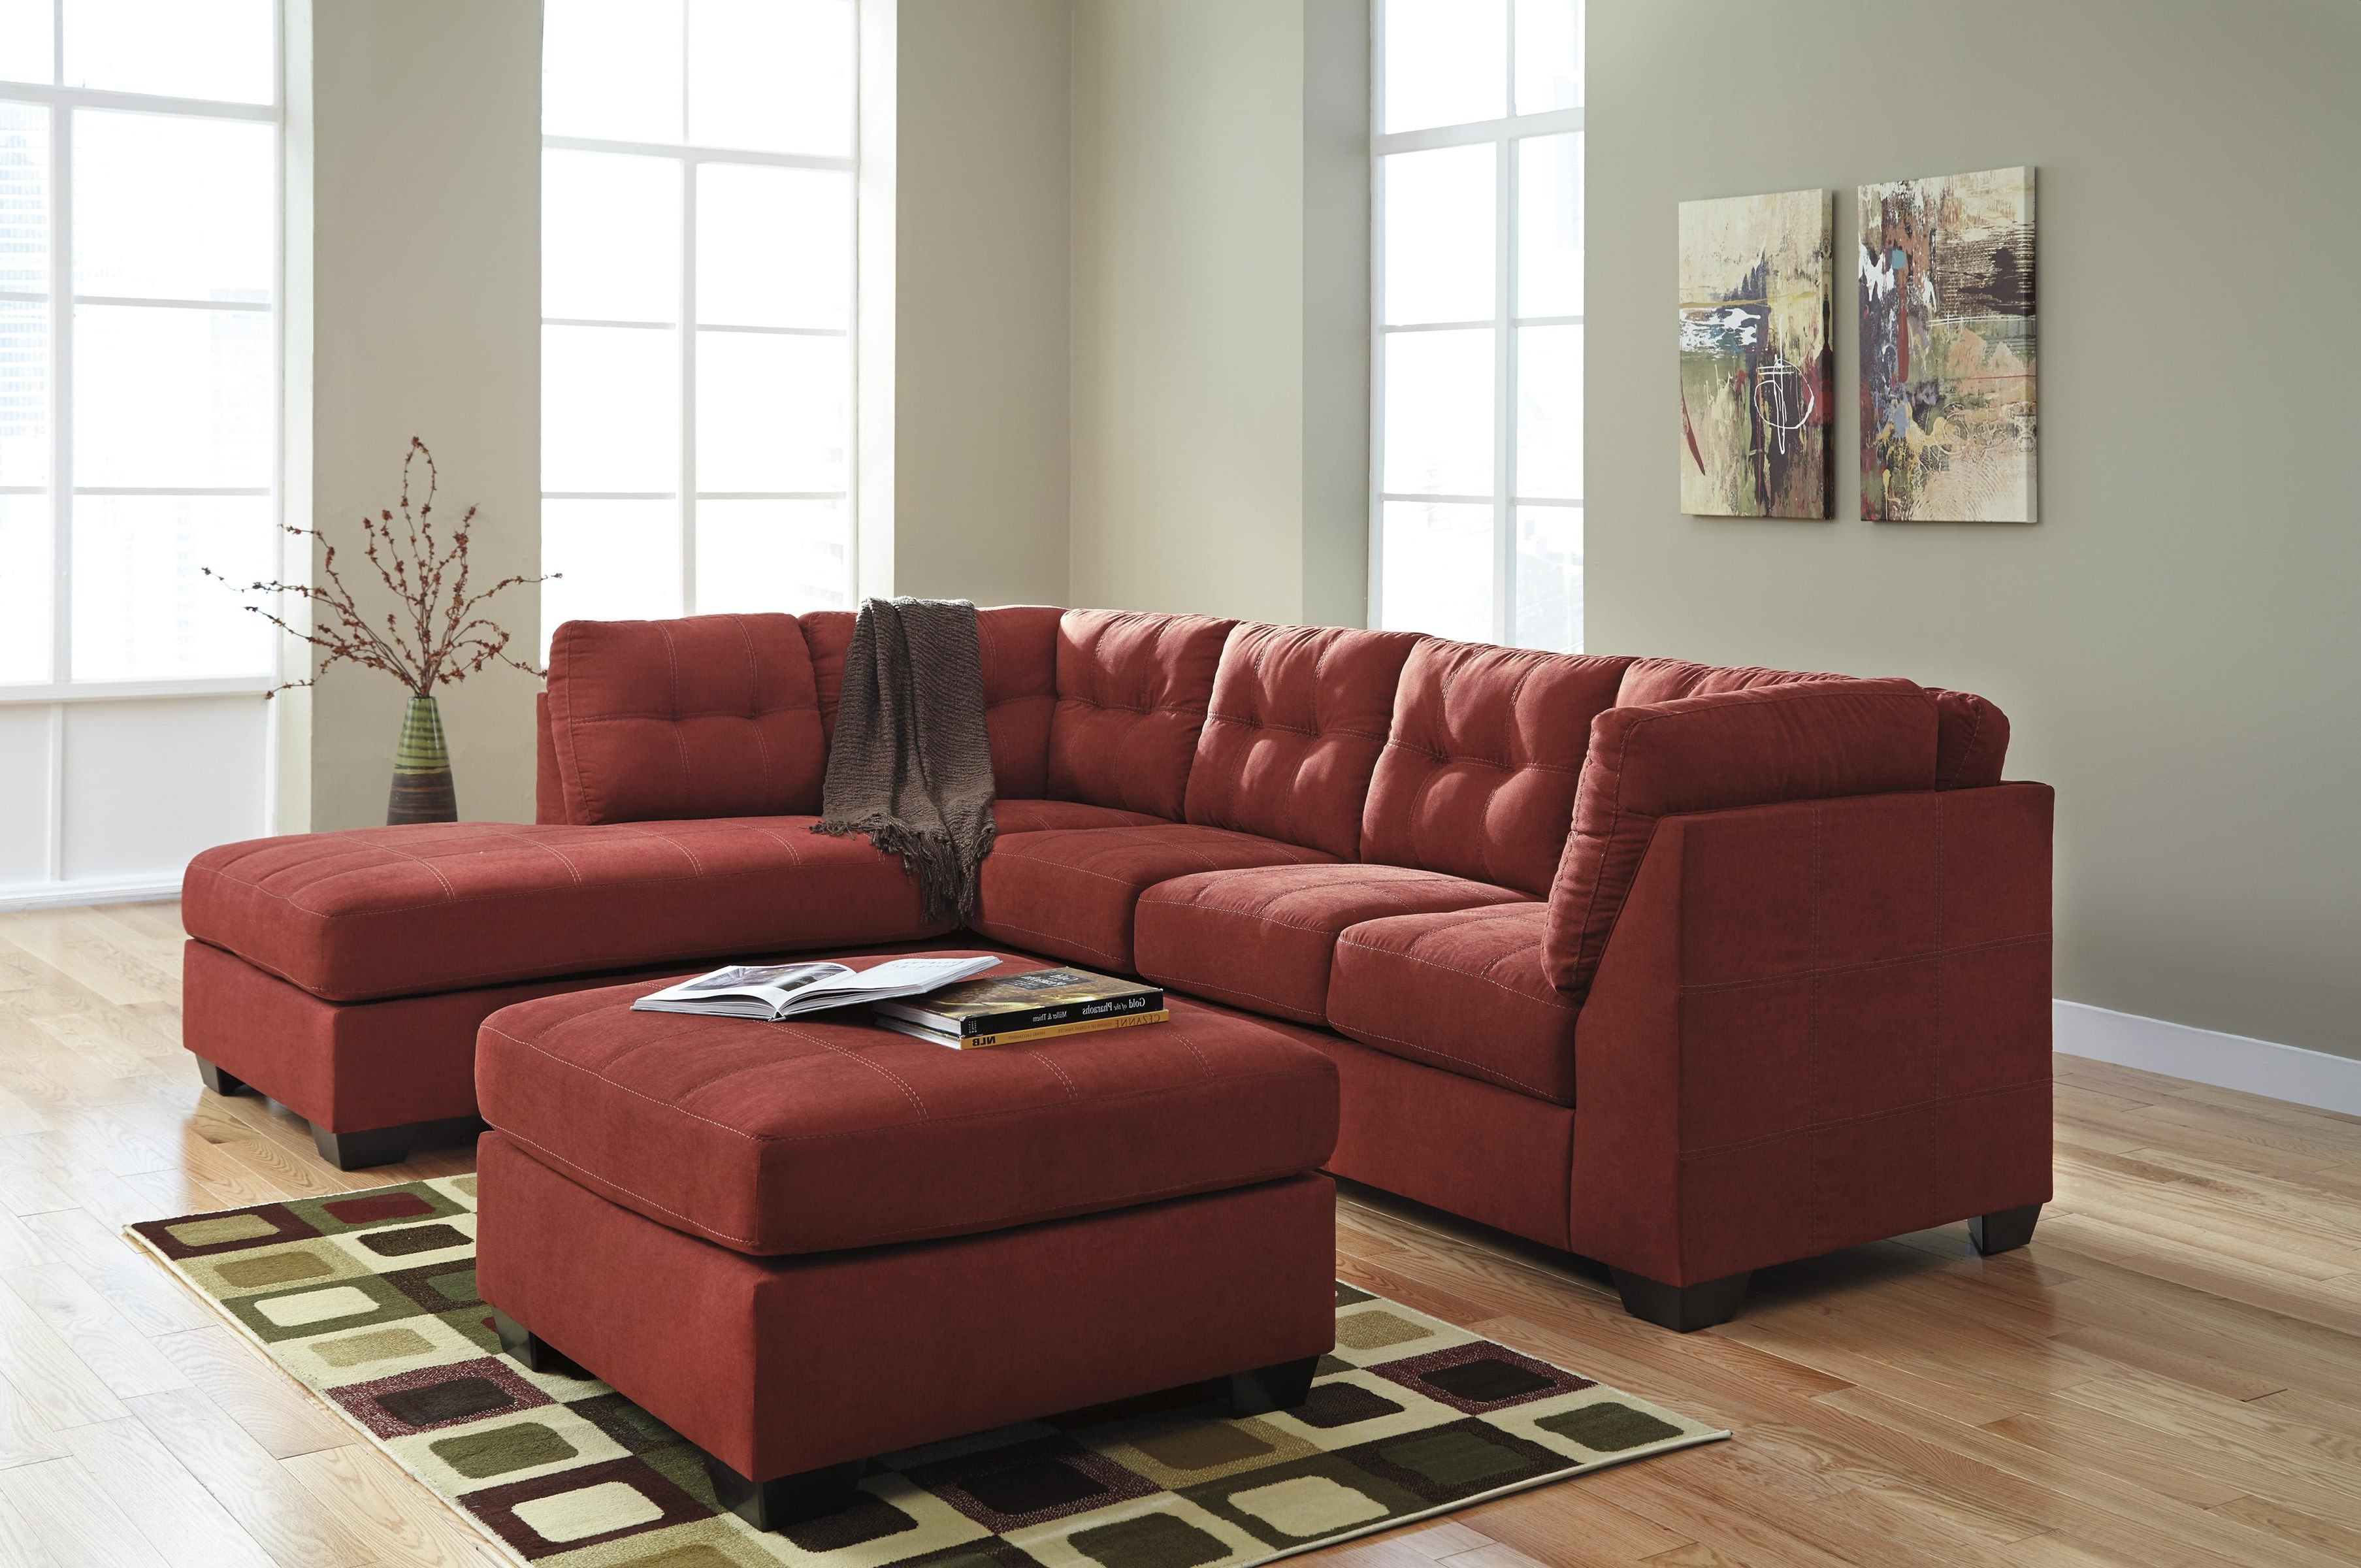 2 Piece Sectionals With Chaise Intended For Fashionable Benchcraft Maier – Sienna 2 Piece Sectional W/ Sleeper Sofa (View 5 of 15)